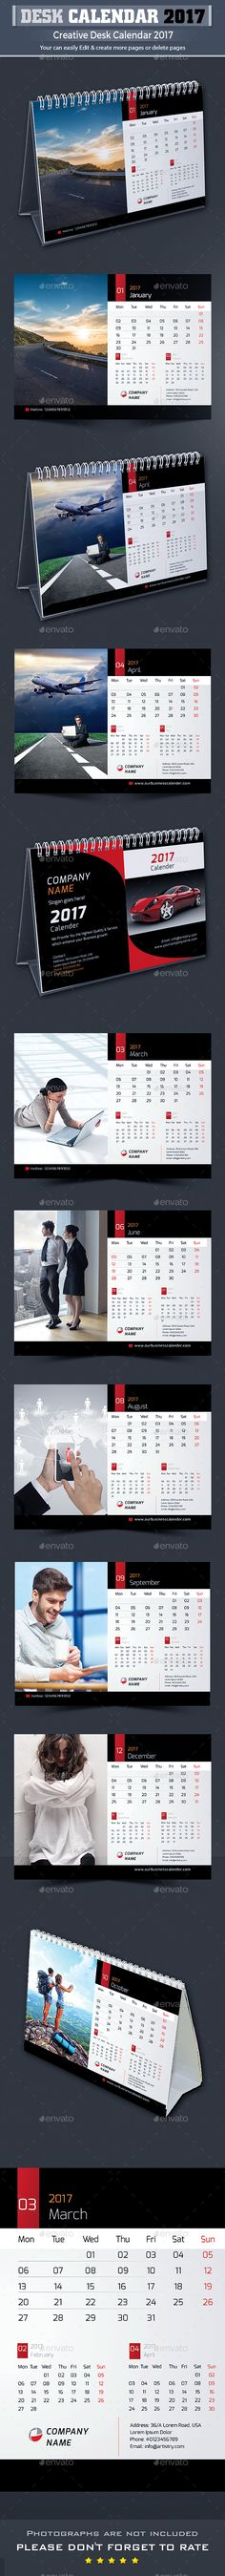 Wall Calendar  Set  Calendars  Walls And Calendar Design